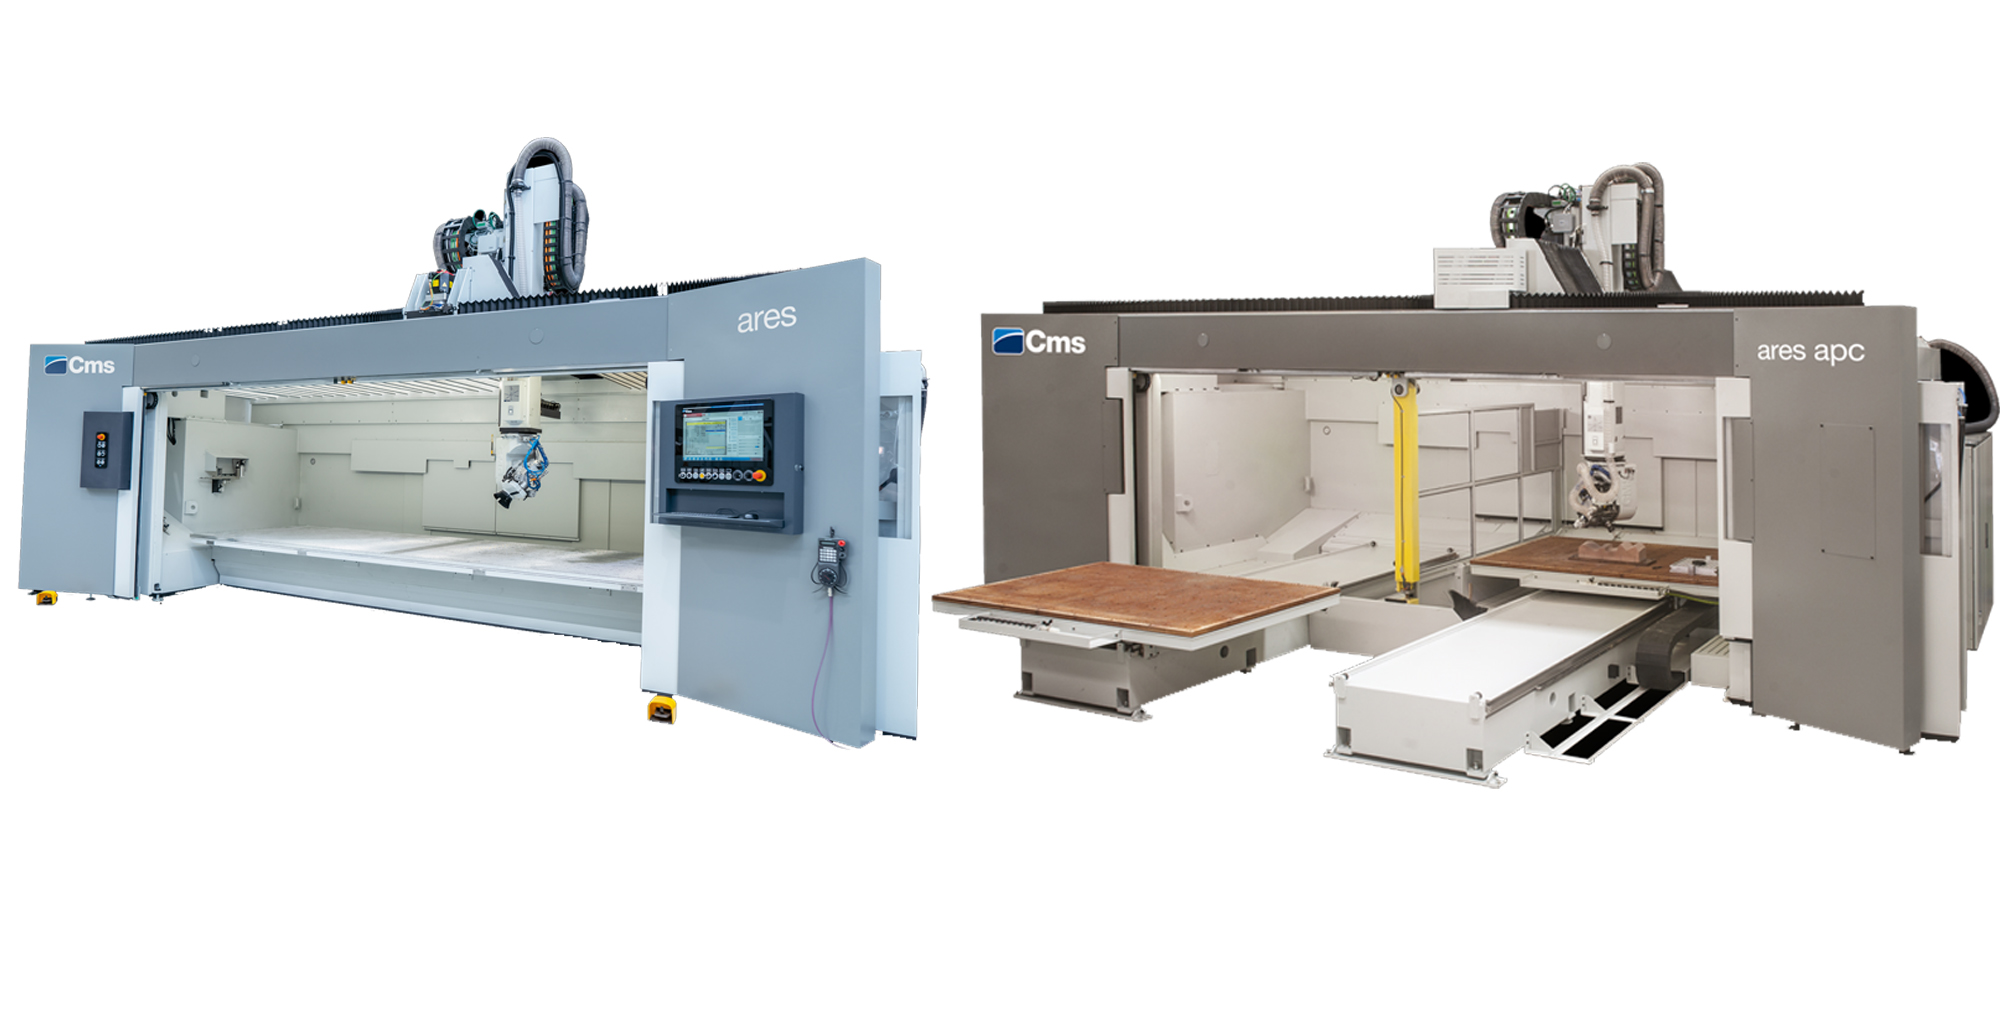 ares 2 - CMS Machining Centers